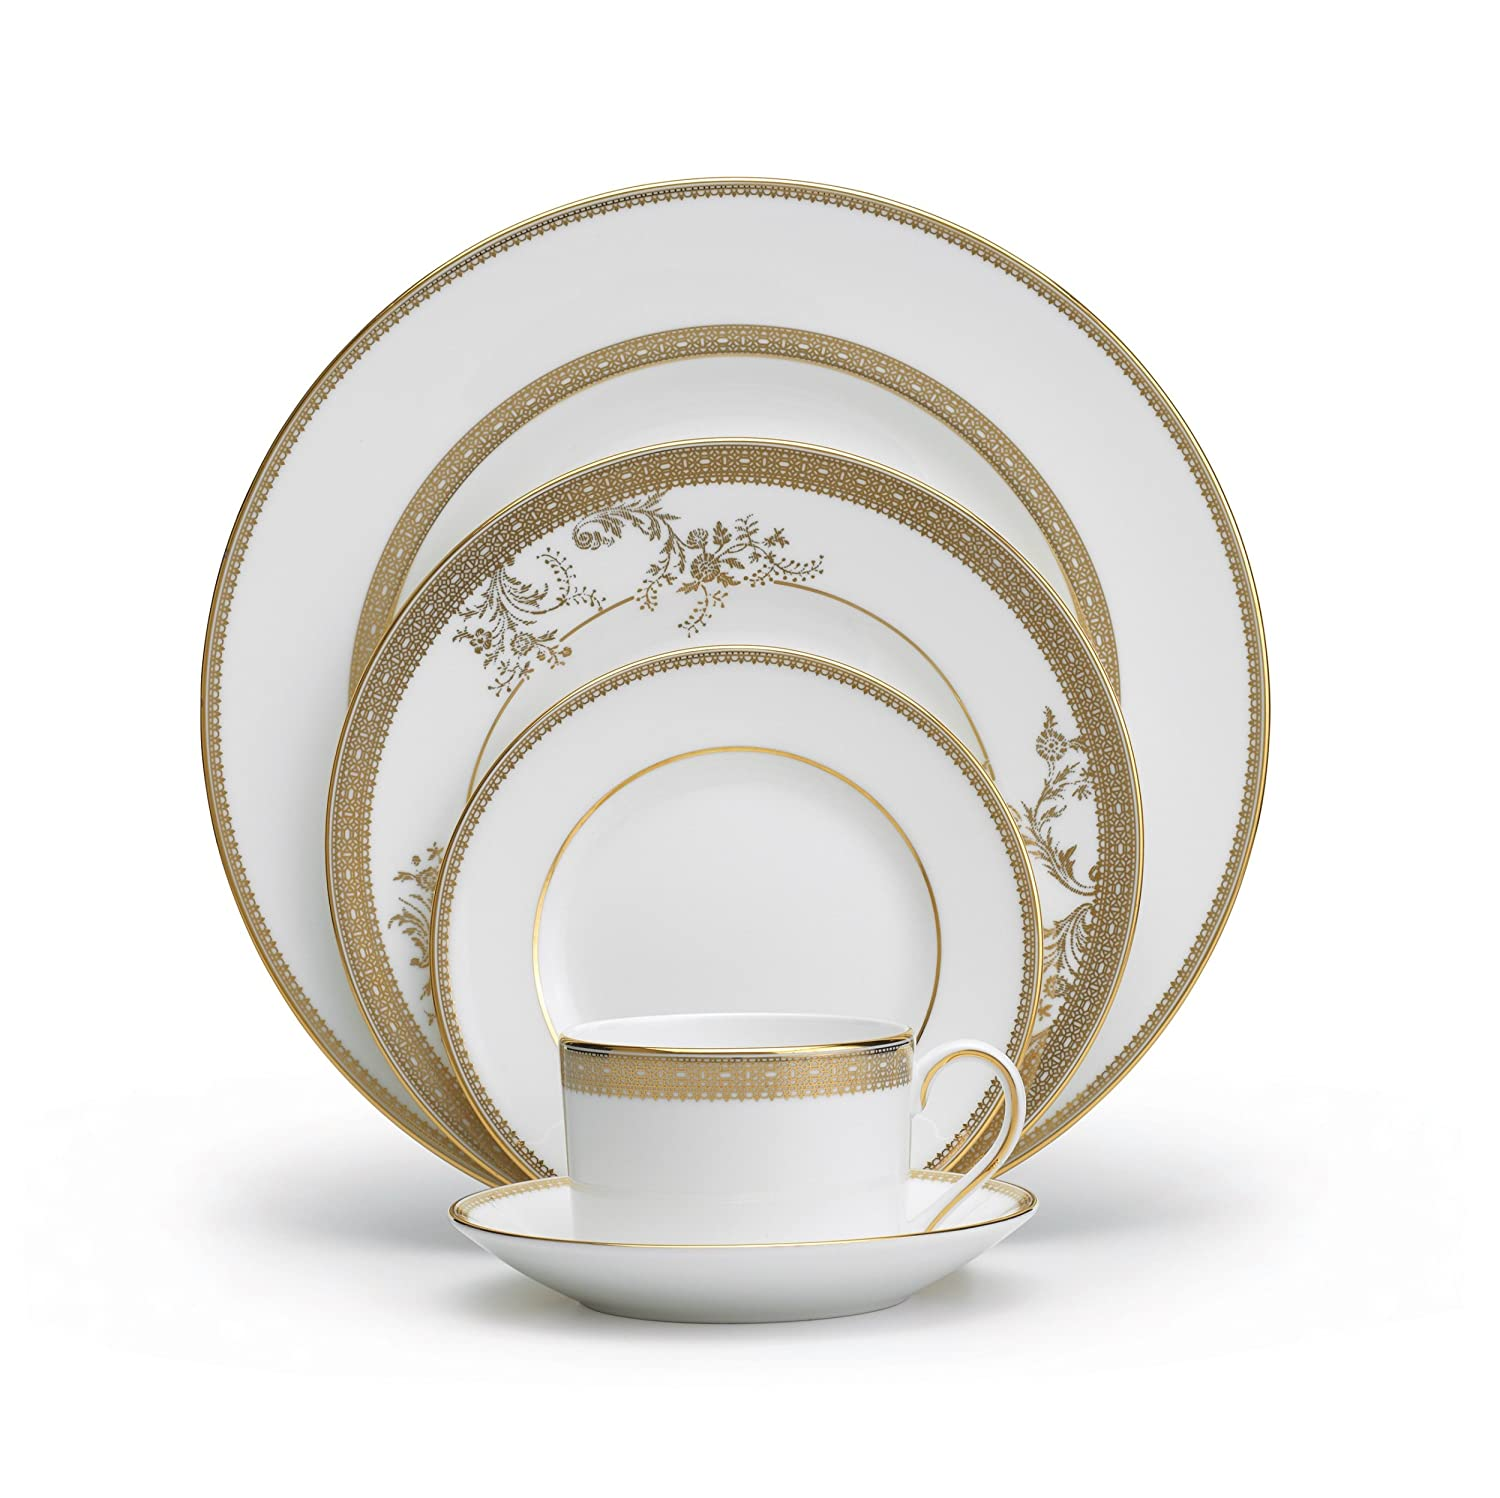 Wedgwood Vera Lace Gold 5-Piece Place Setting Service for 1